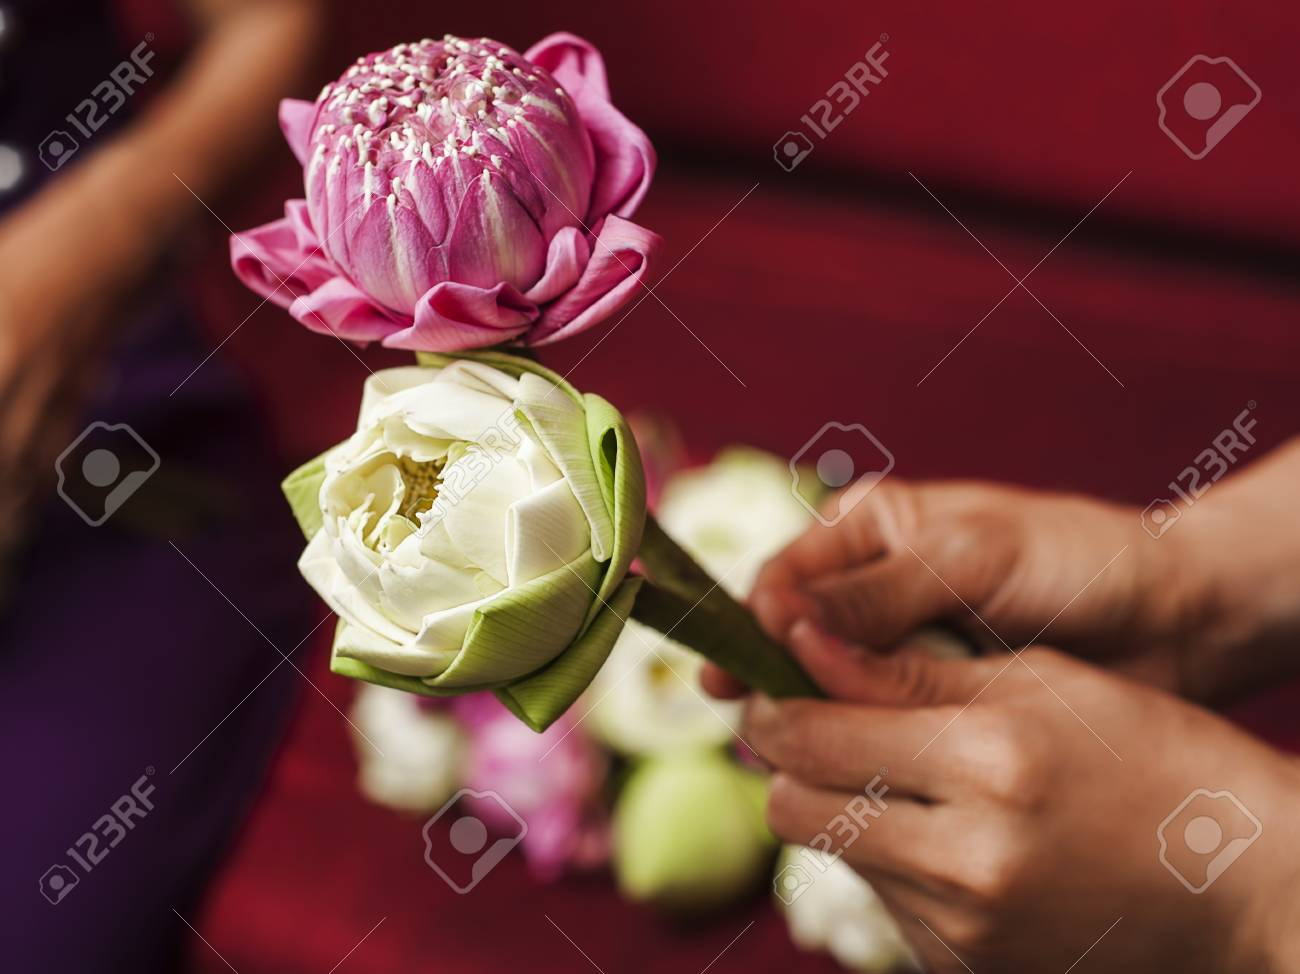 Pink and white lotus flowers in woman hands stock photo picture and pink and white lotus flowers in woman hands stock photo 91778931 mightylinksfo